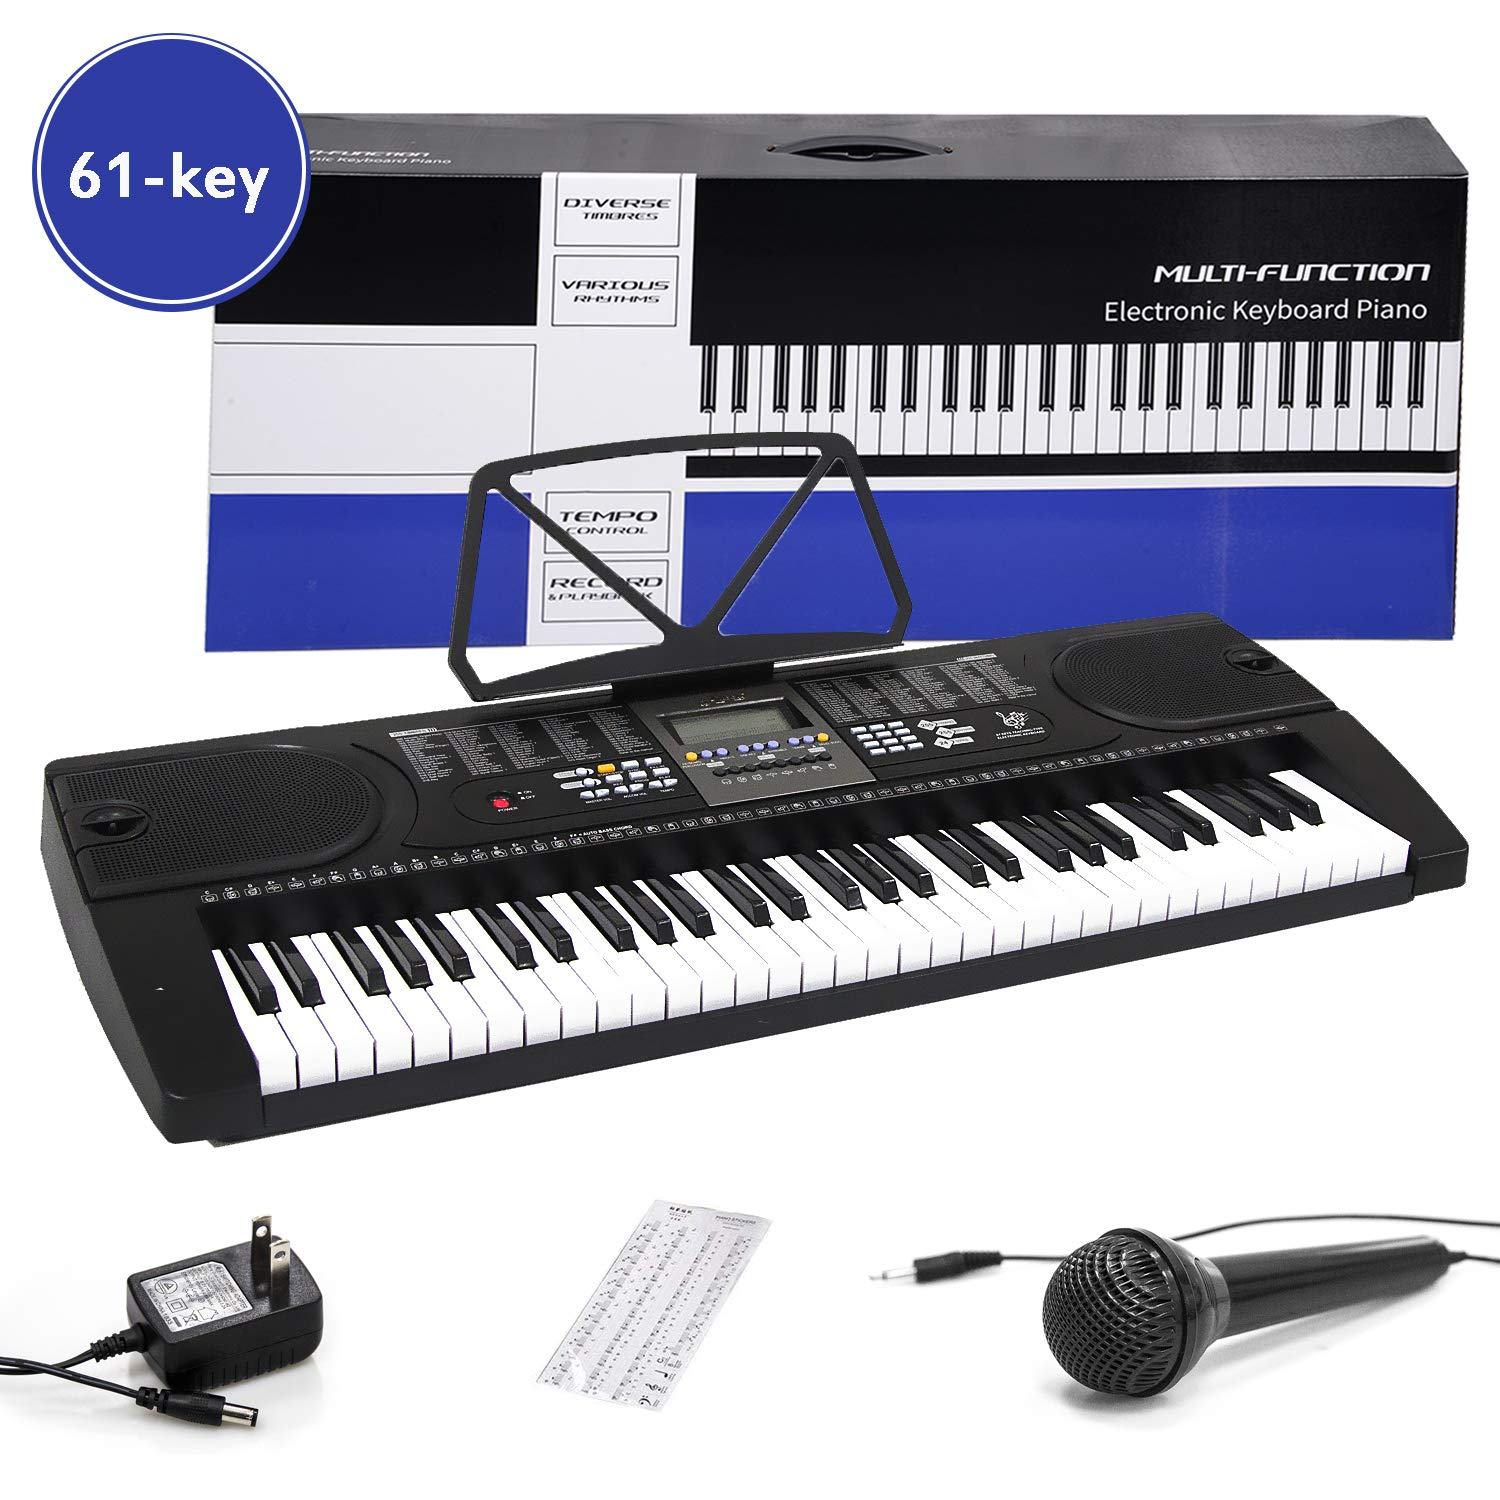 Digital Electric Piano 61-Key Portable Electronic Keyboard with Power Adapter, Sheet Music Stand for Beginners (Kids & Adults) Includes Microphone and Keyboard Sticker by Aileen